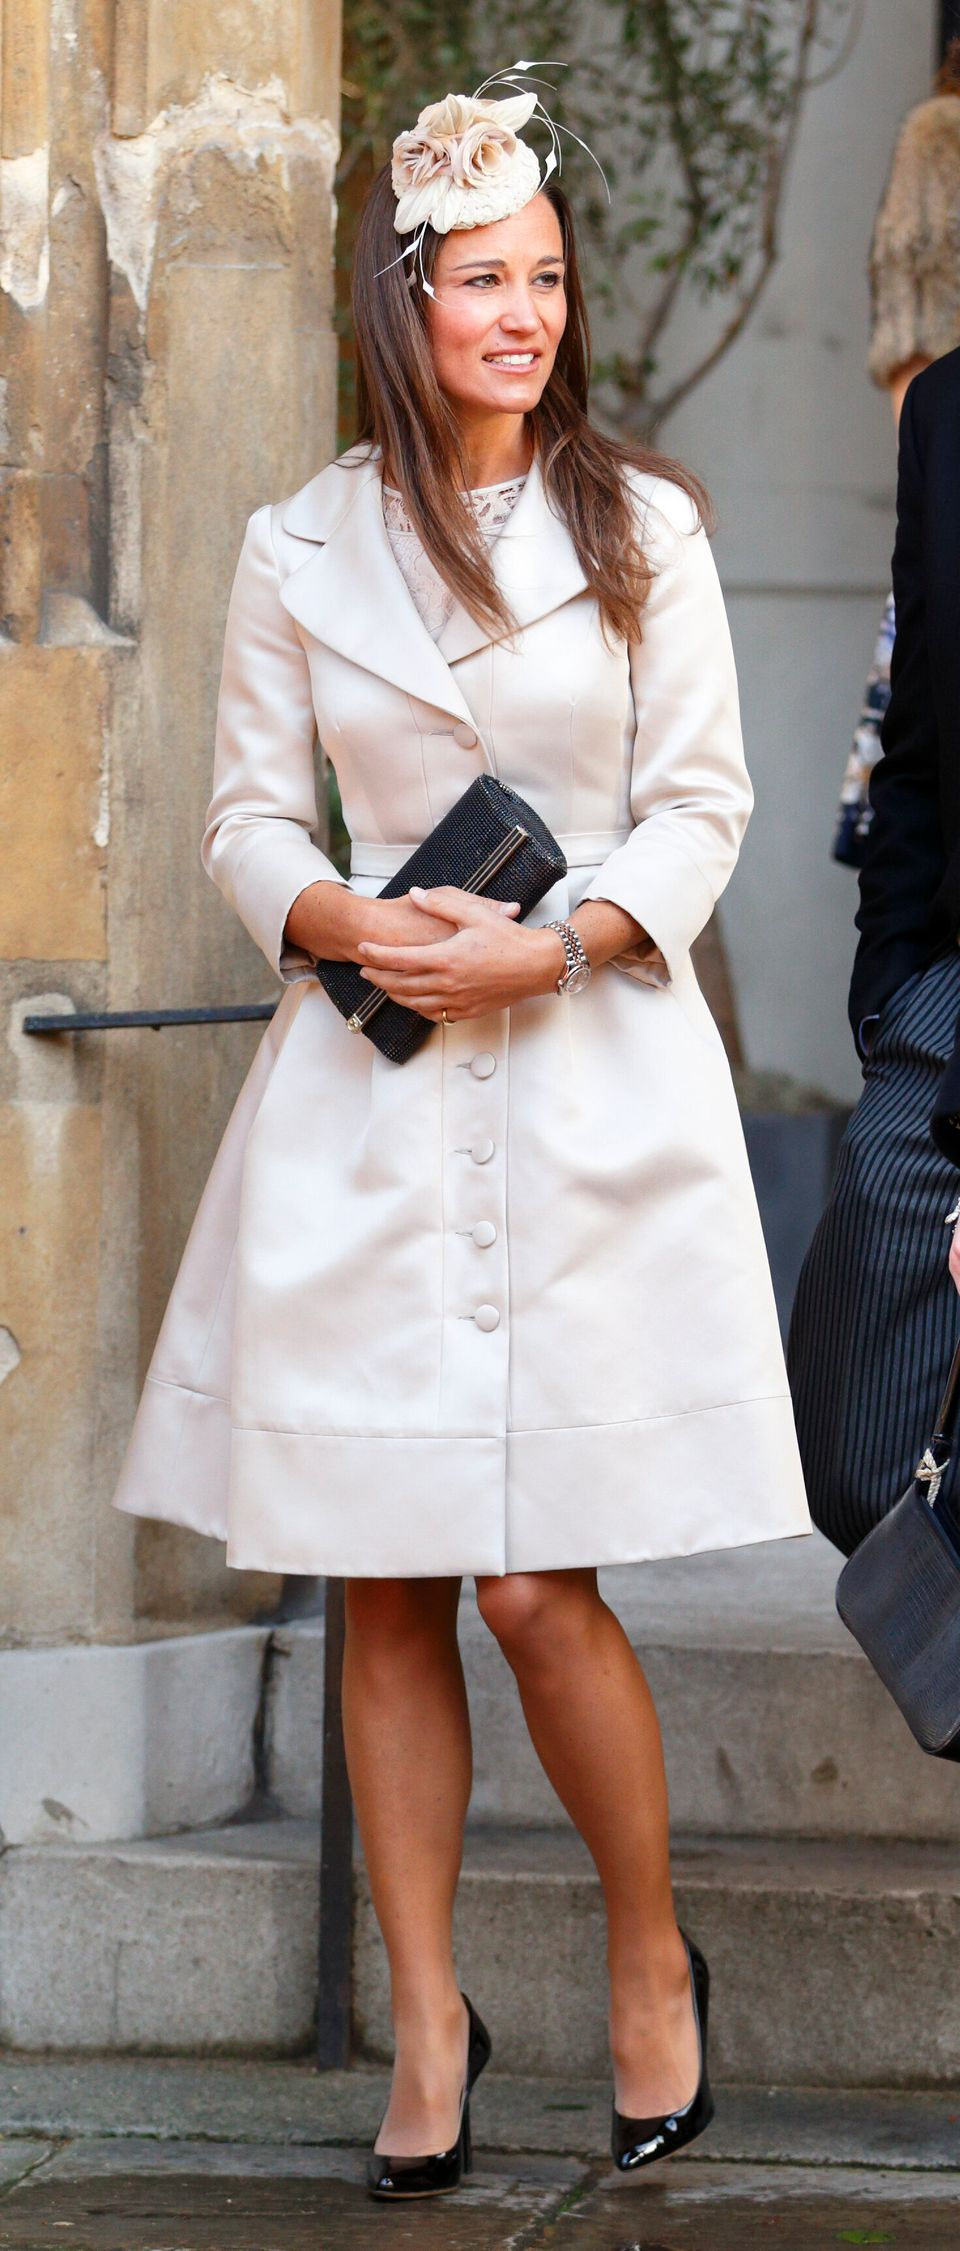 Pippa Middleton's Style Evolution Through The Years 48